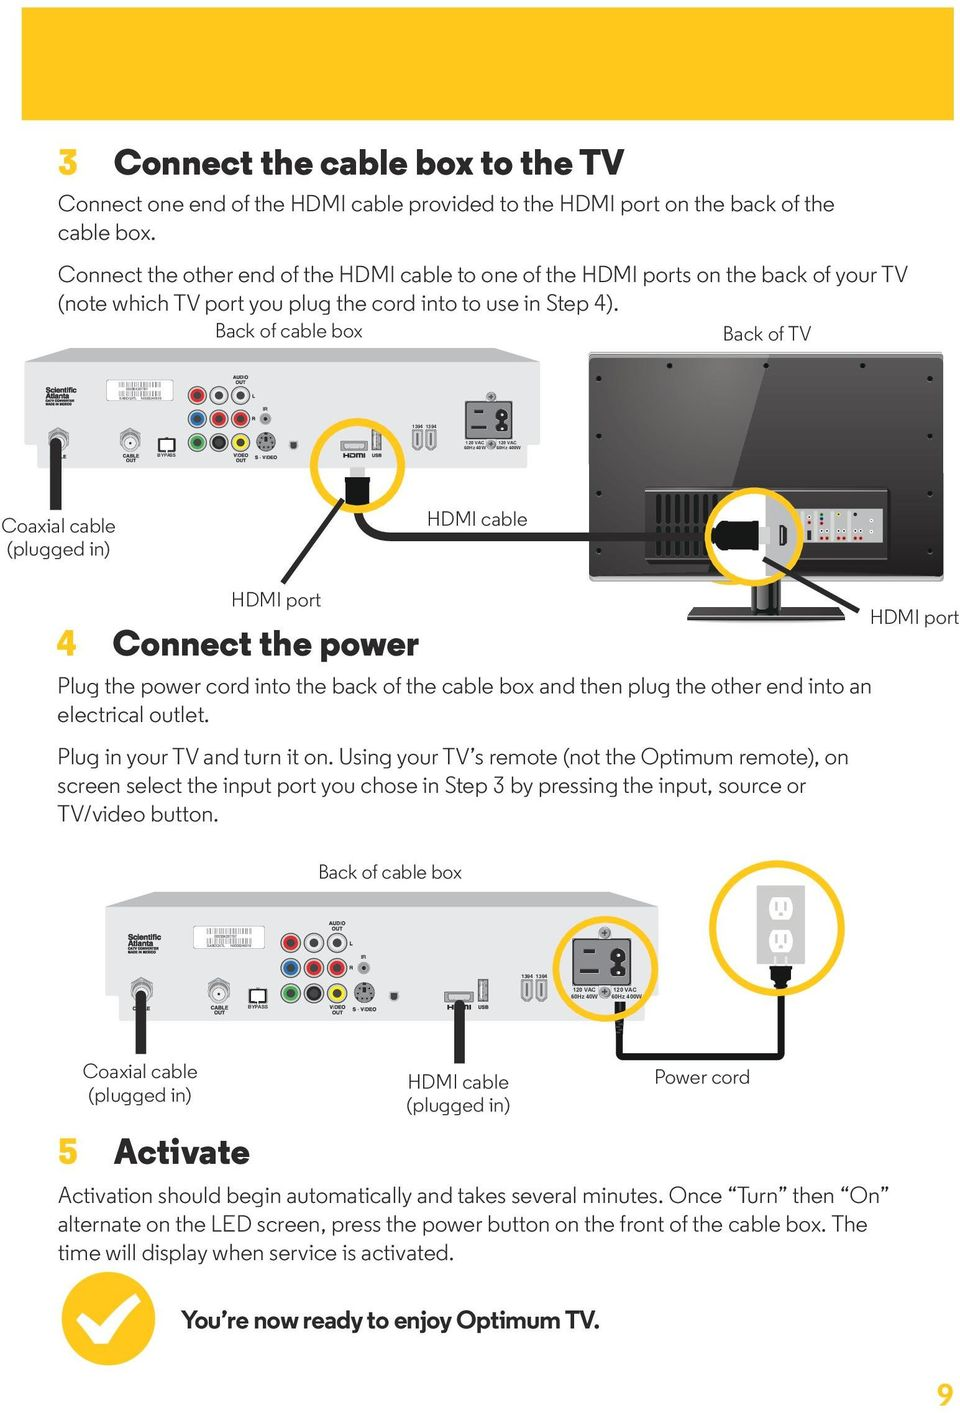 Back of TV 1394 1394 60Hz 40W 60Hz 400W HDMI cable 1394 1394 HDMI port 4 Connect the power Plug the power cord into the back of the cable box and then plug the other end into an electrical outlet.